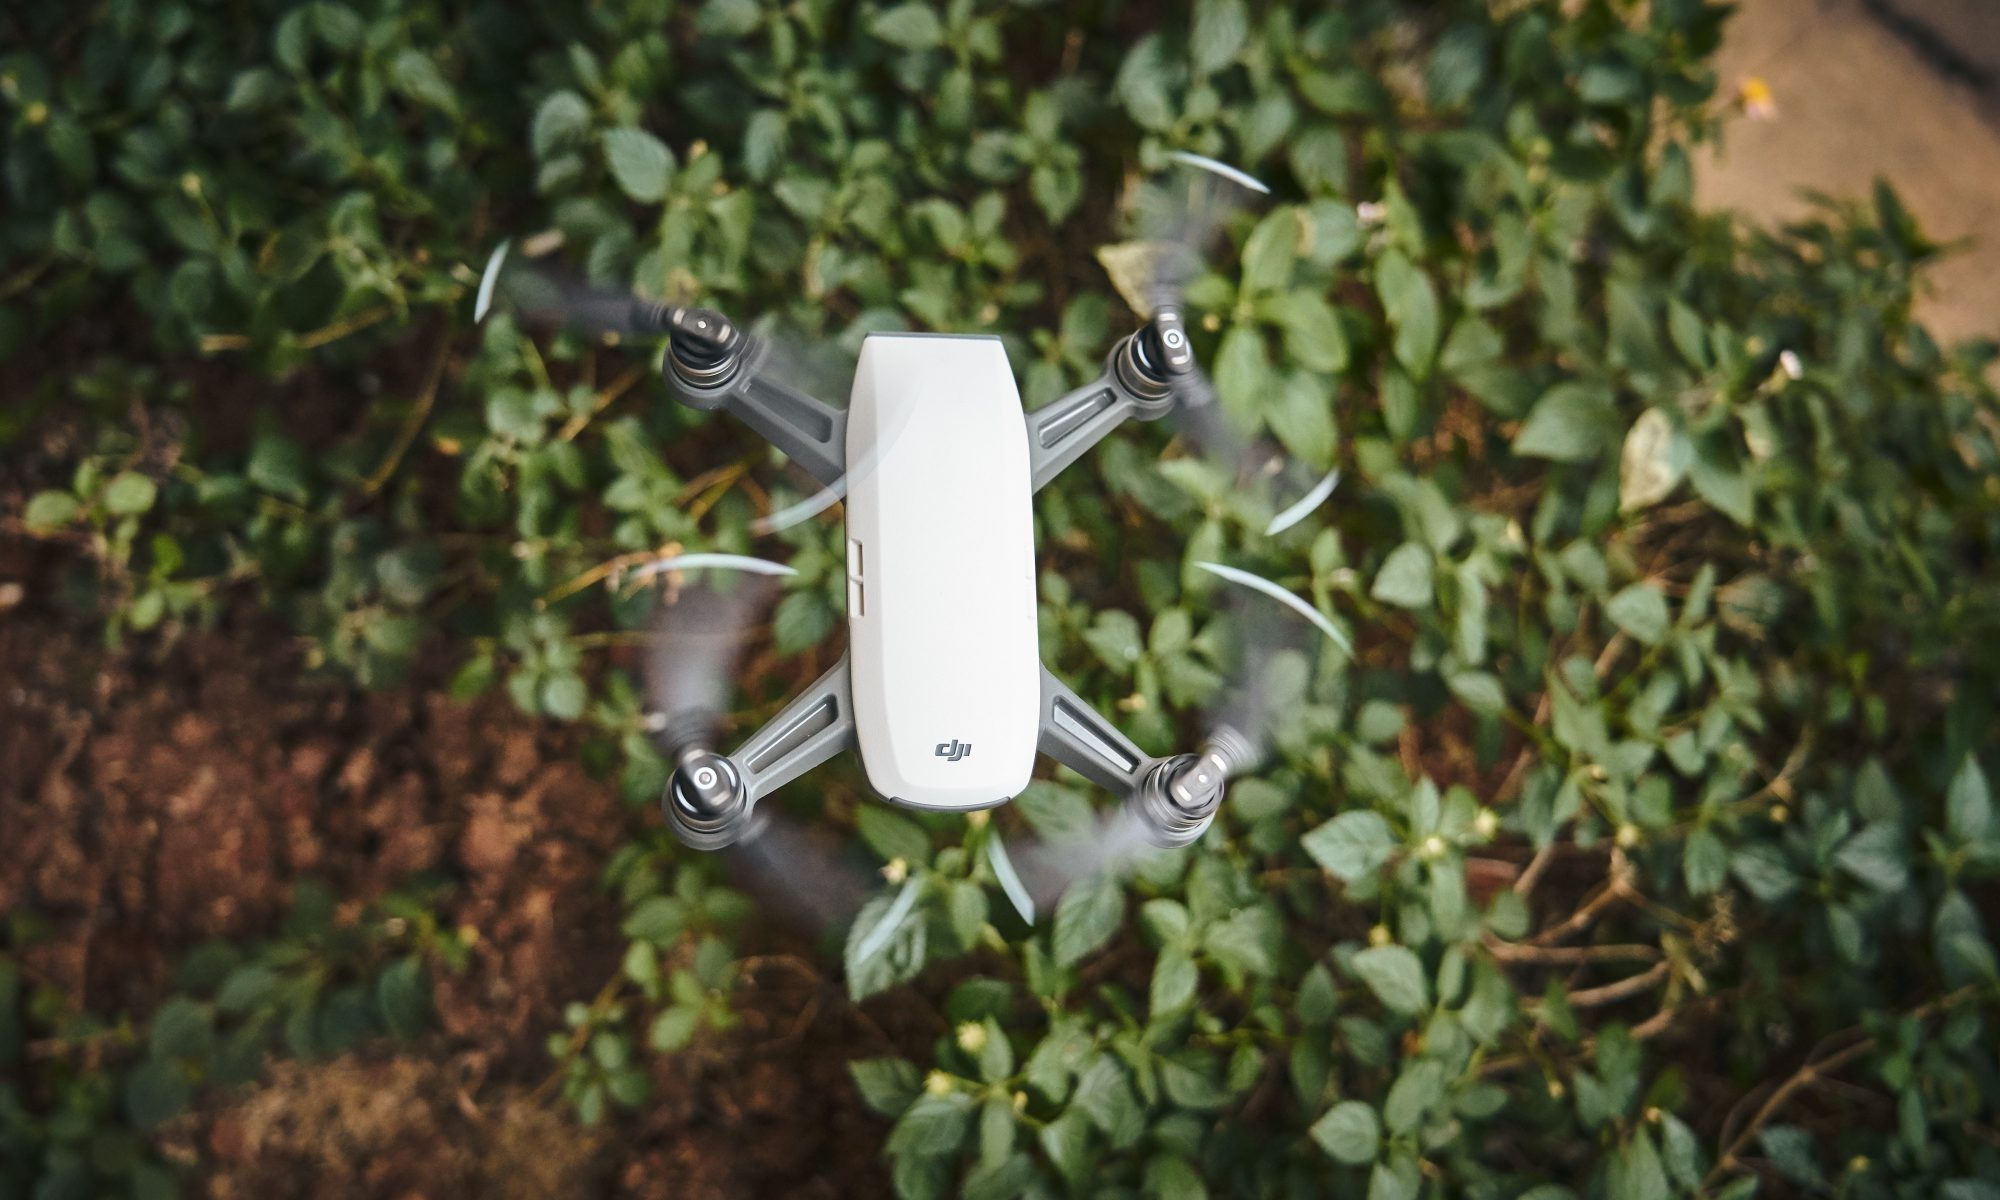 Image: A top view of some plants on the ground, above them a drone.